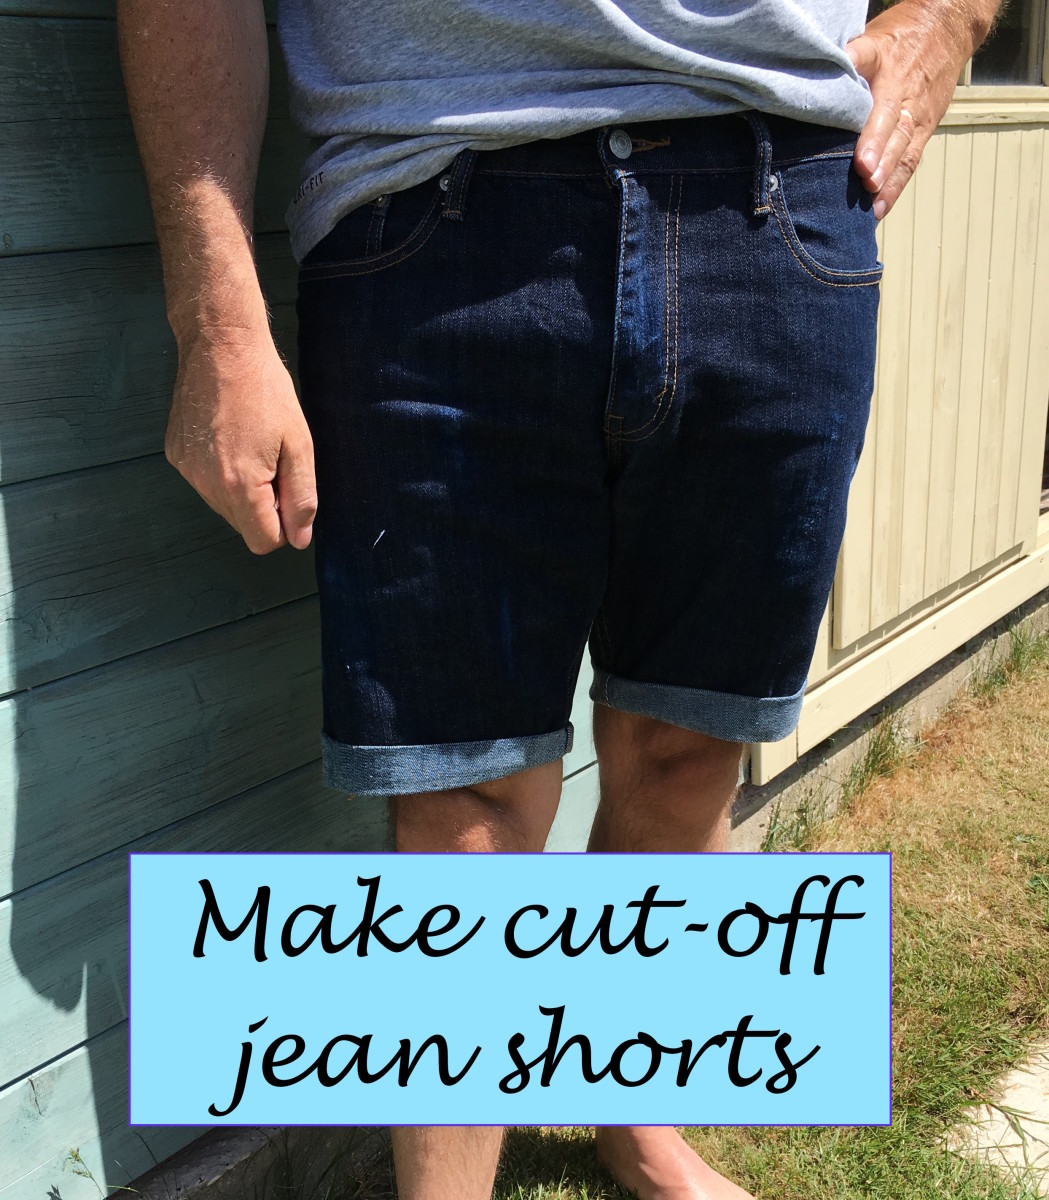 Make Your Own Cut-Off Jean Shorts to Save Money